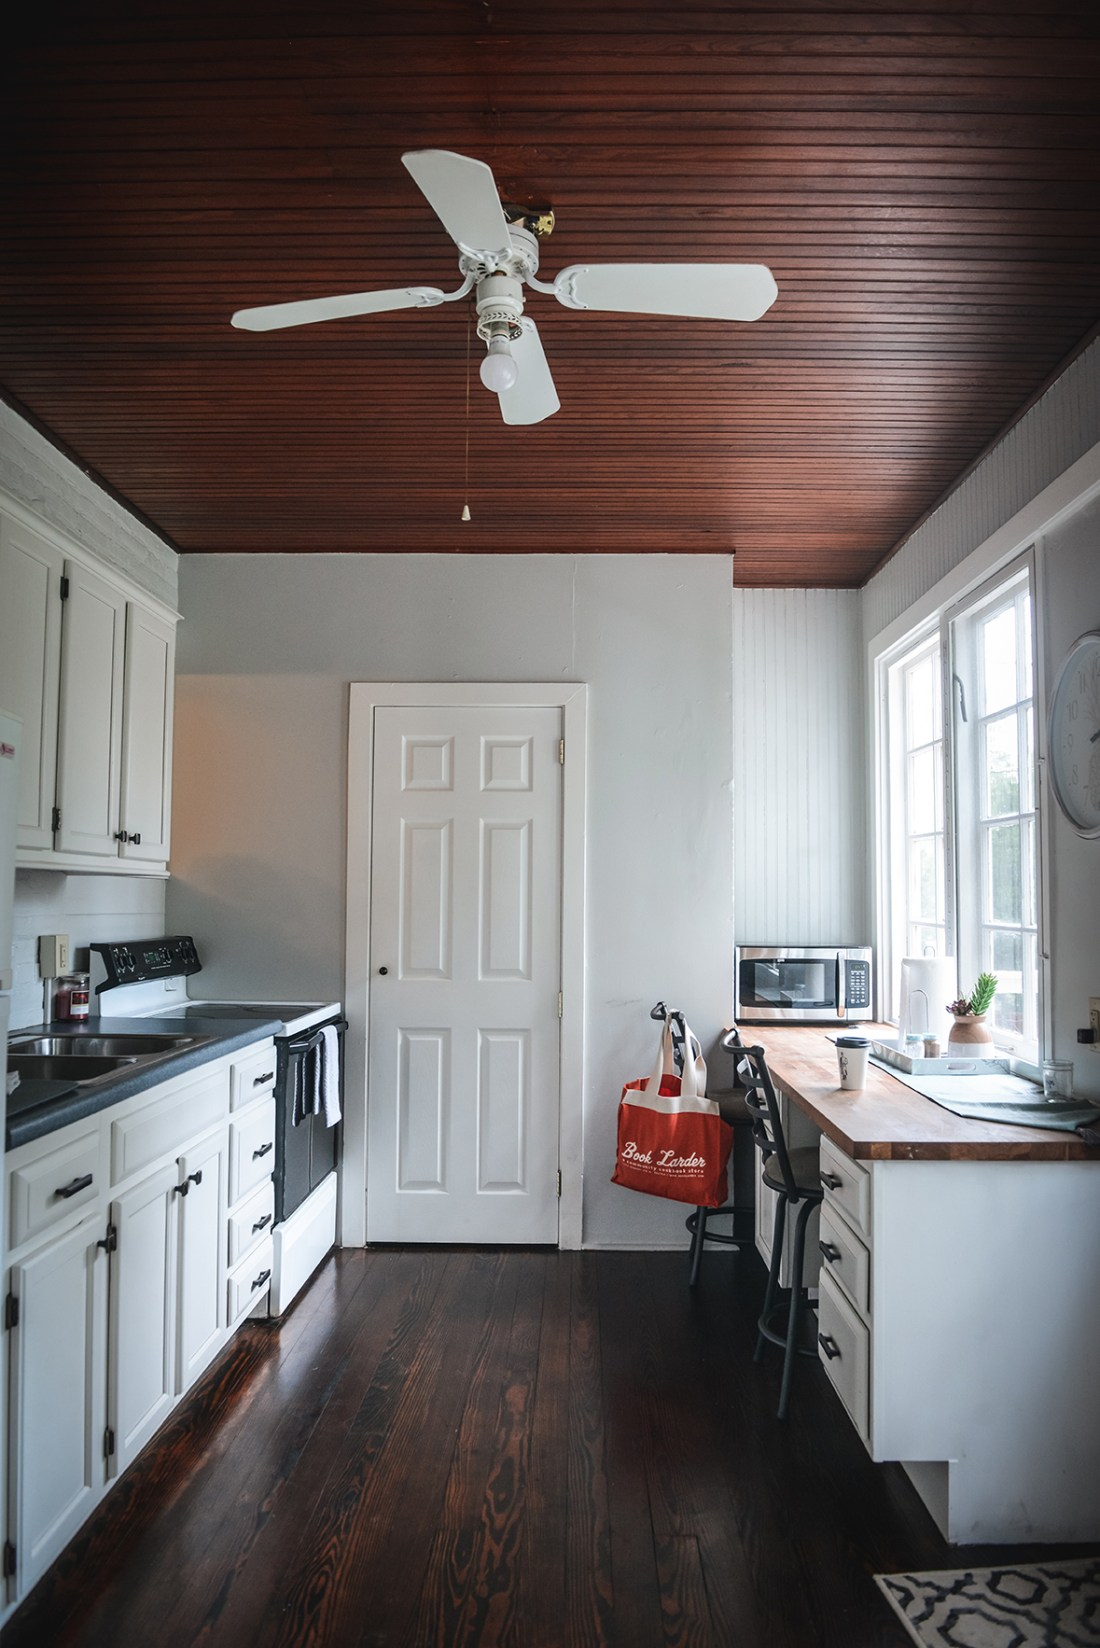 Where to stay in Lancaster, Pennsylvania? Check out the Air Bnb where we stayed! // www.WithTheGrains.com